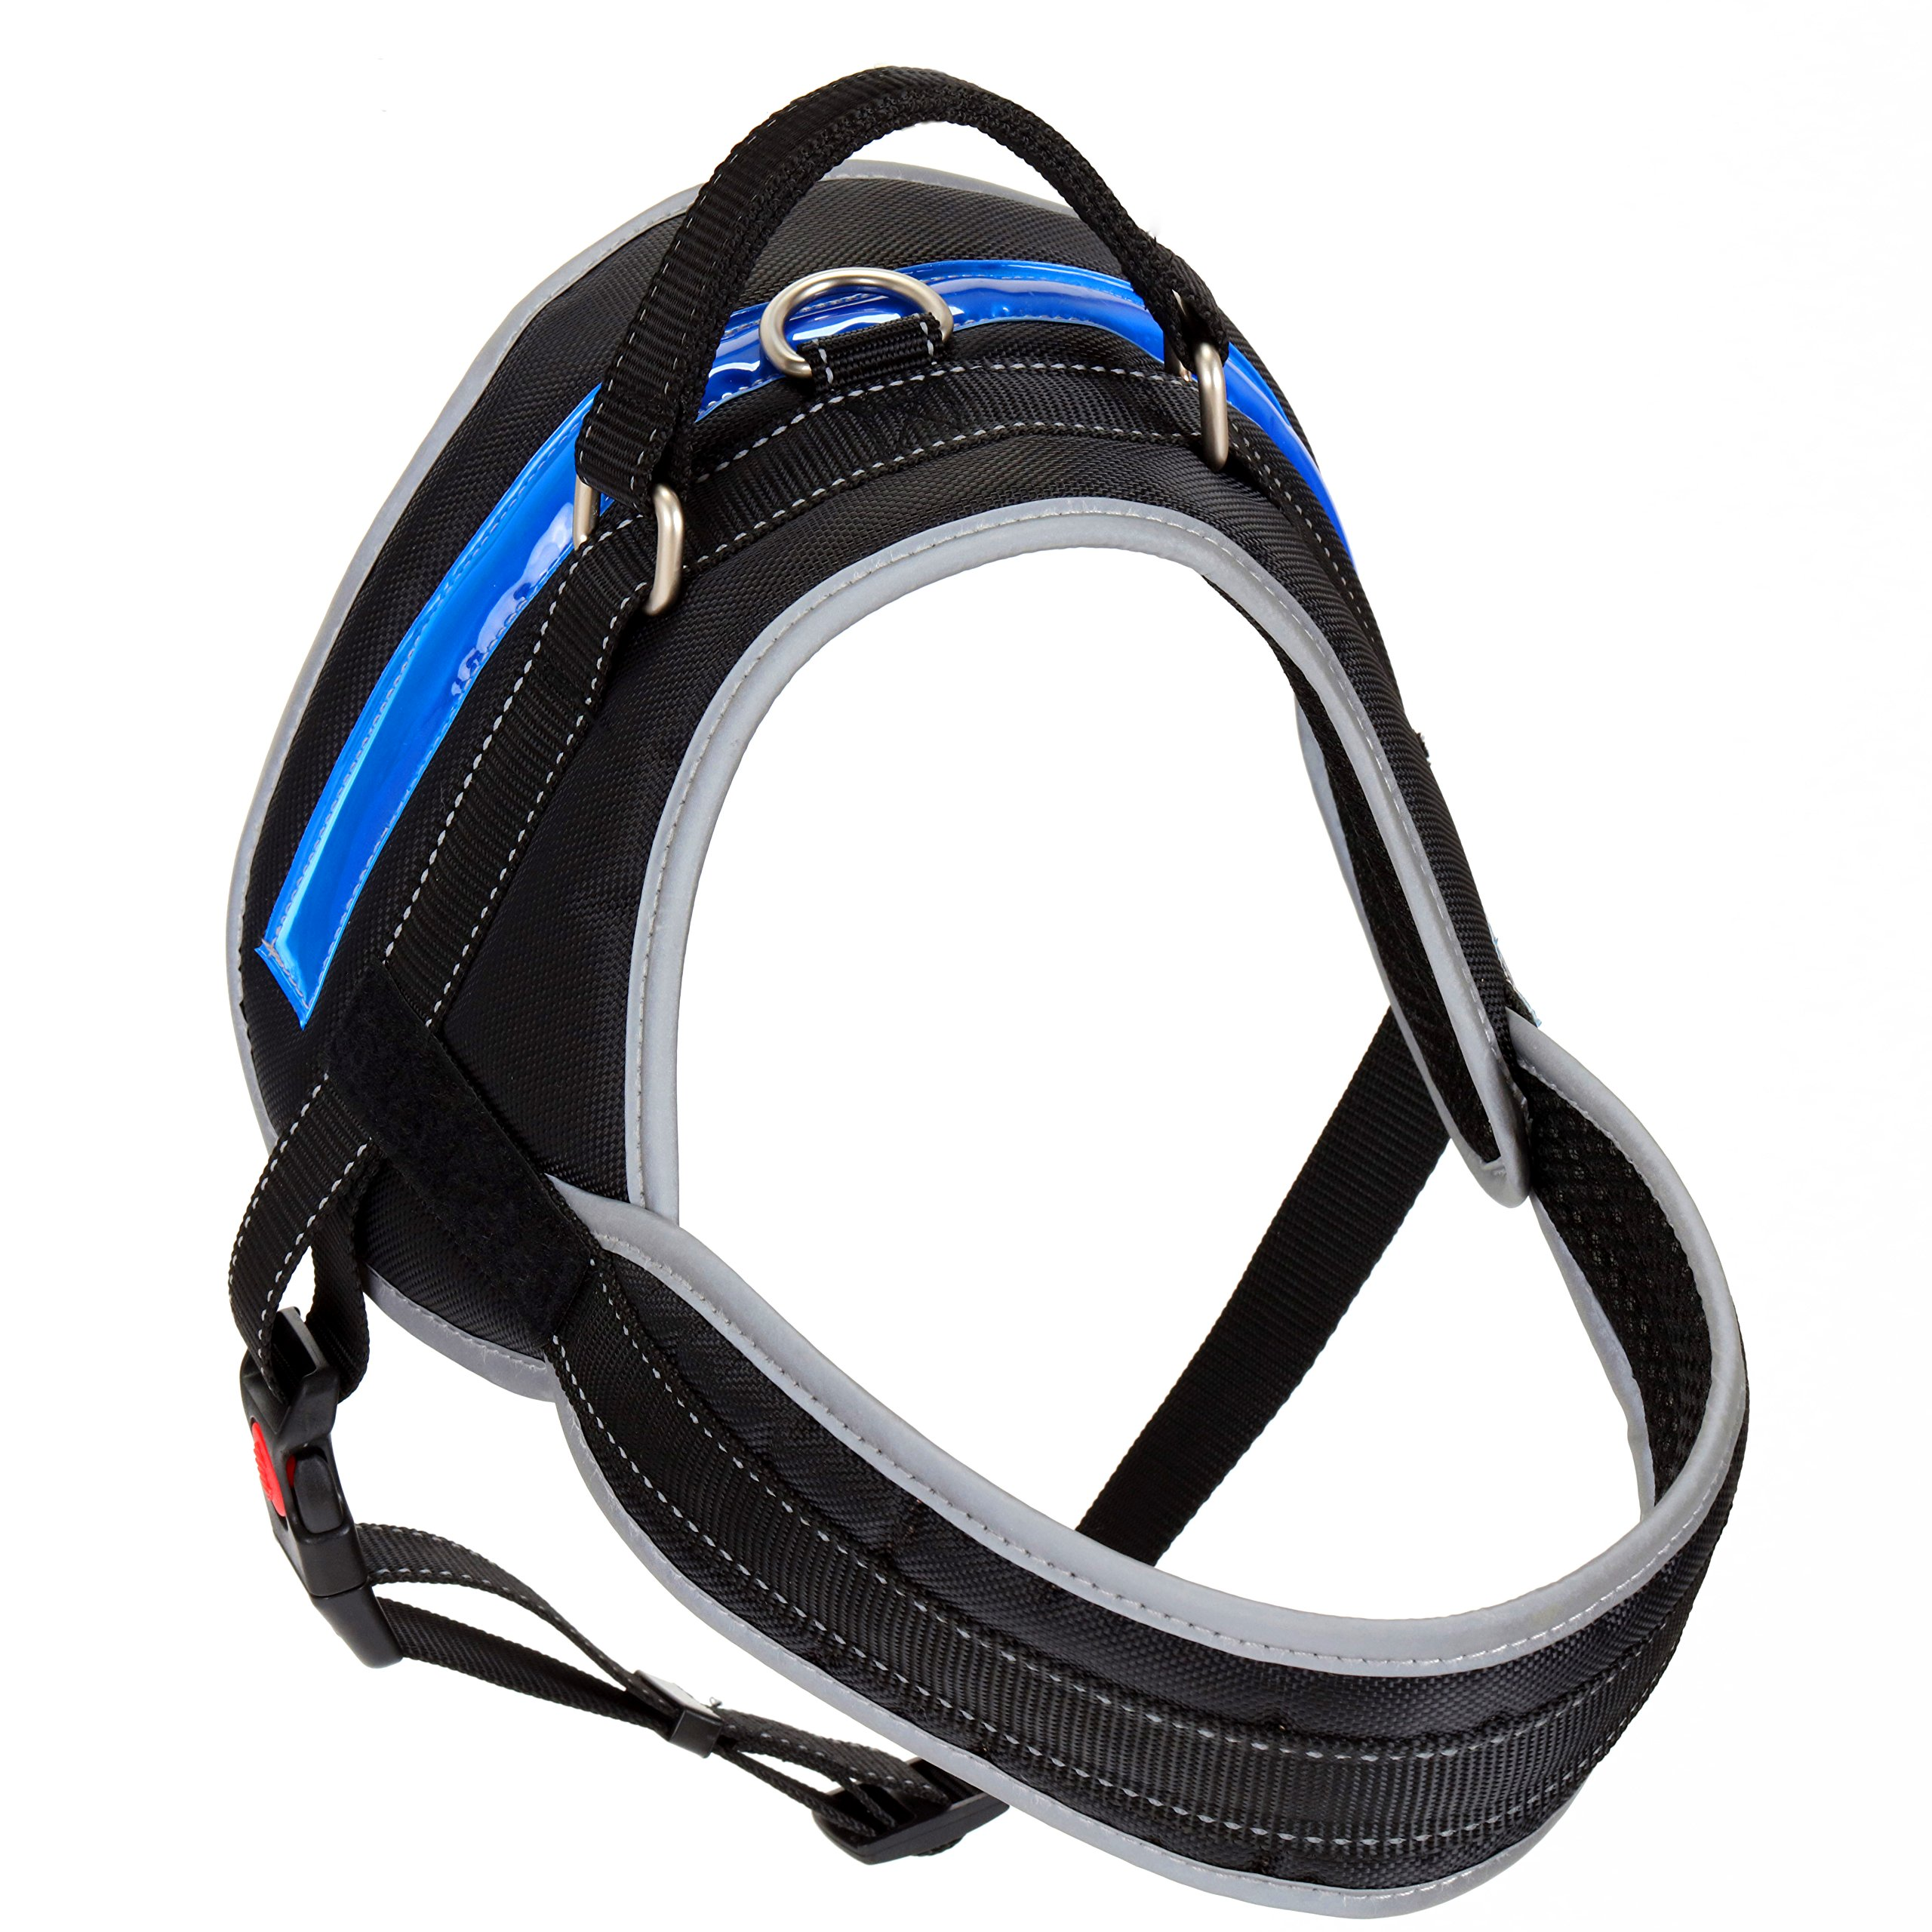 Heavy Duty Reflective Dog Harness with Safety Features [Premium Edition] Available in 4 Sizes, Specially Designed for Medium-Large Dog Breeds (Large, Electric Blue) by Pet Industries (Image #2)